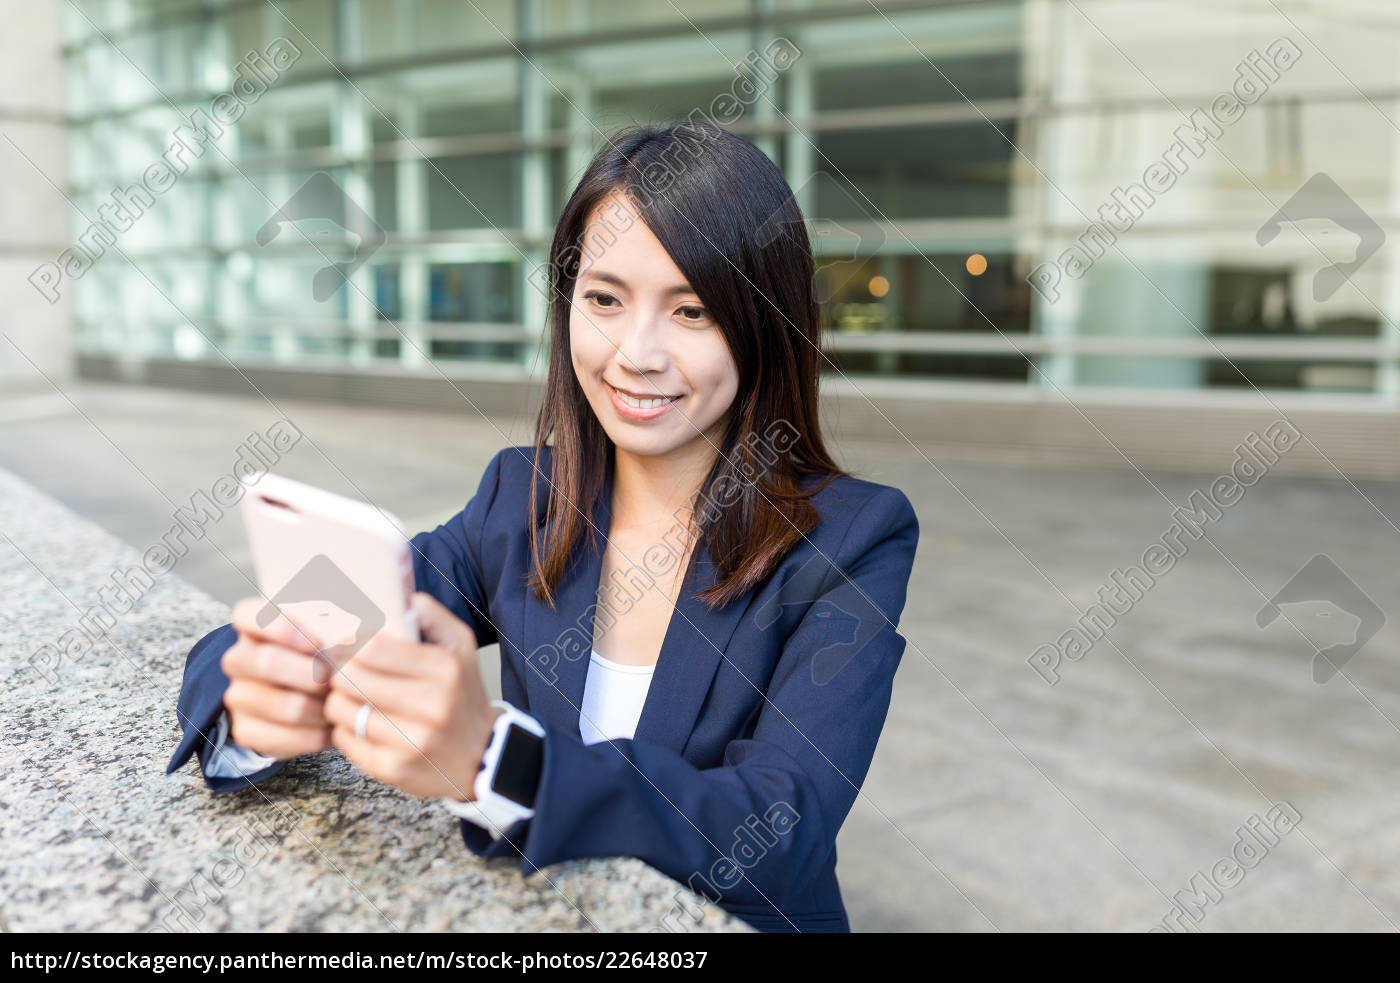 young, businesswoman, working, on, cellphone - 22648037